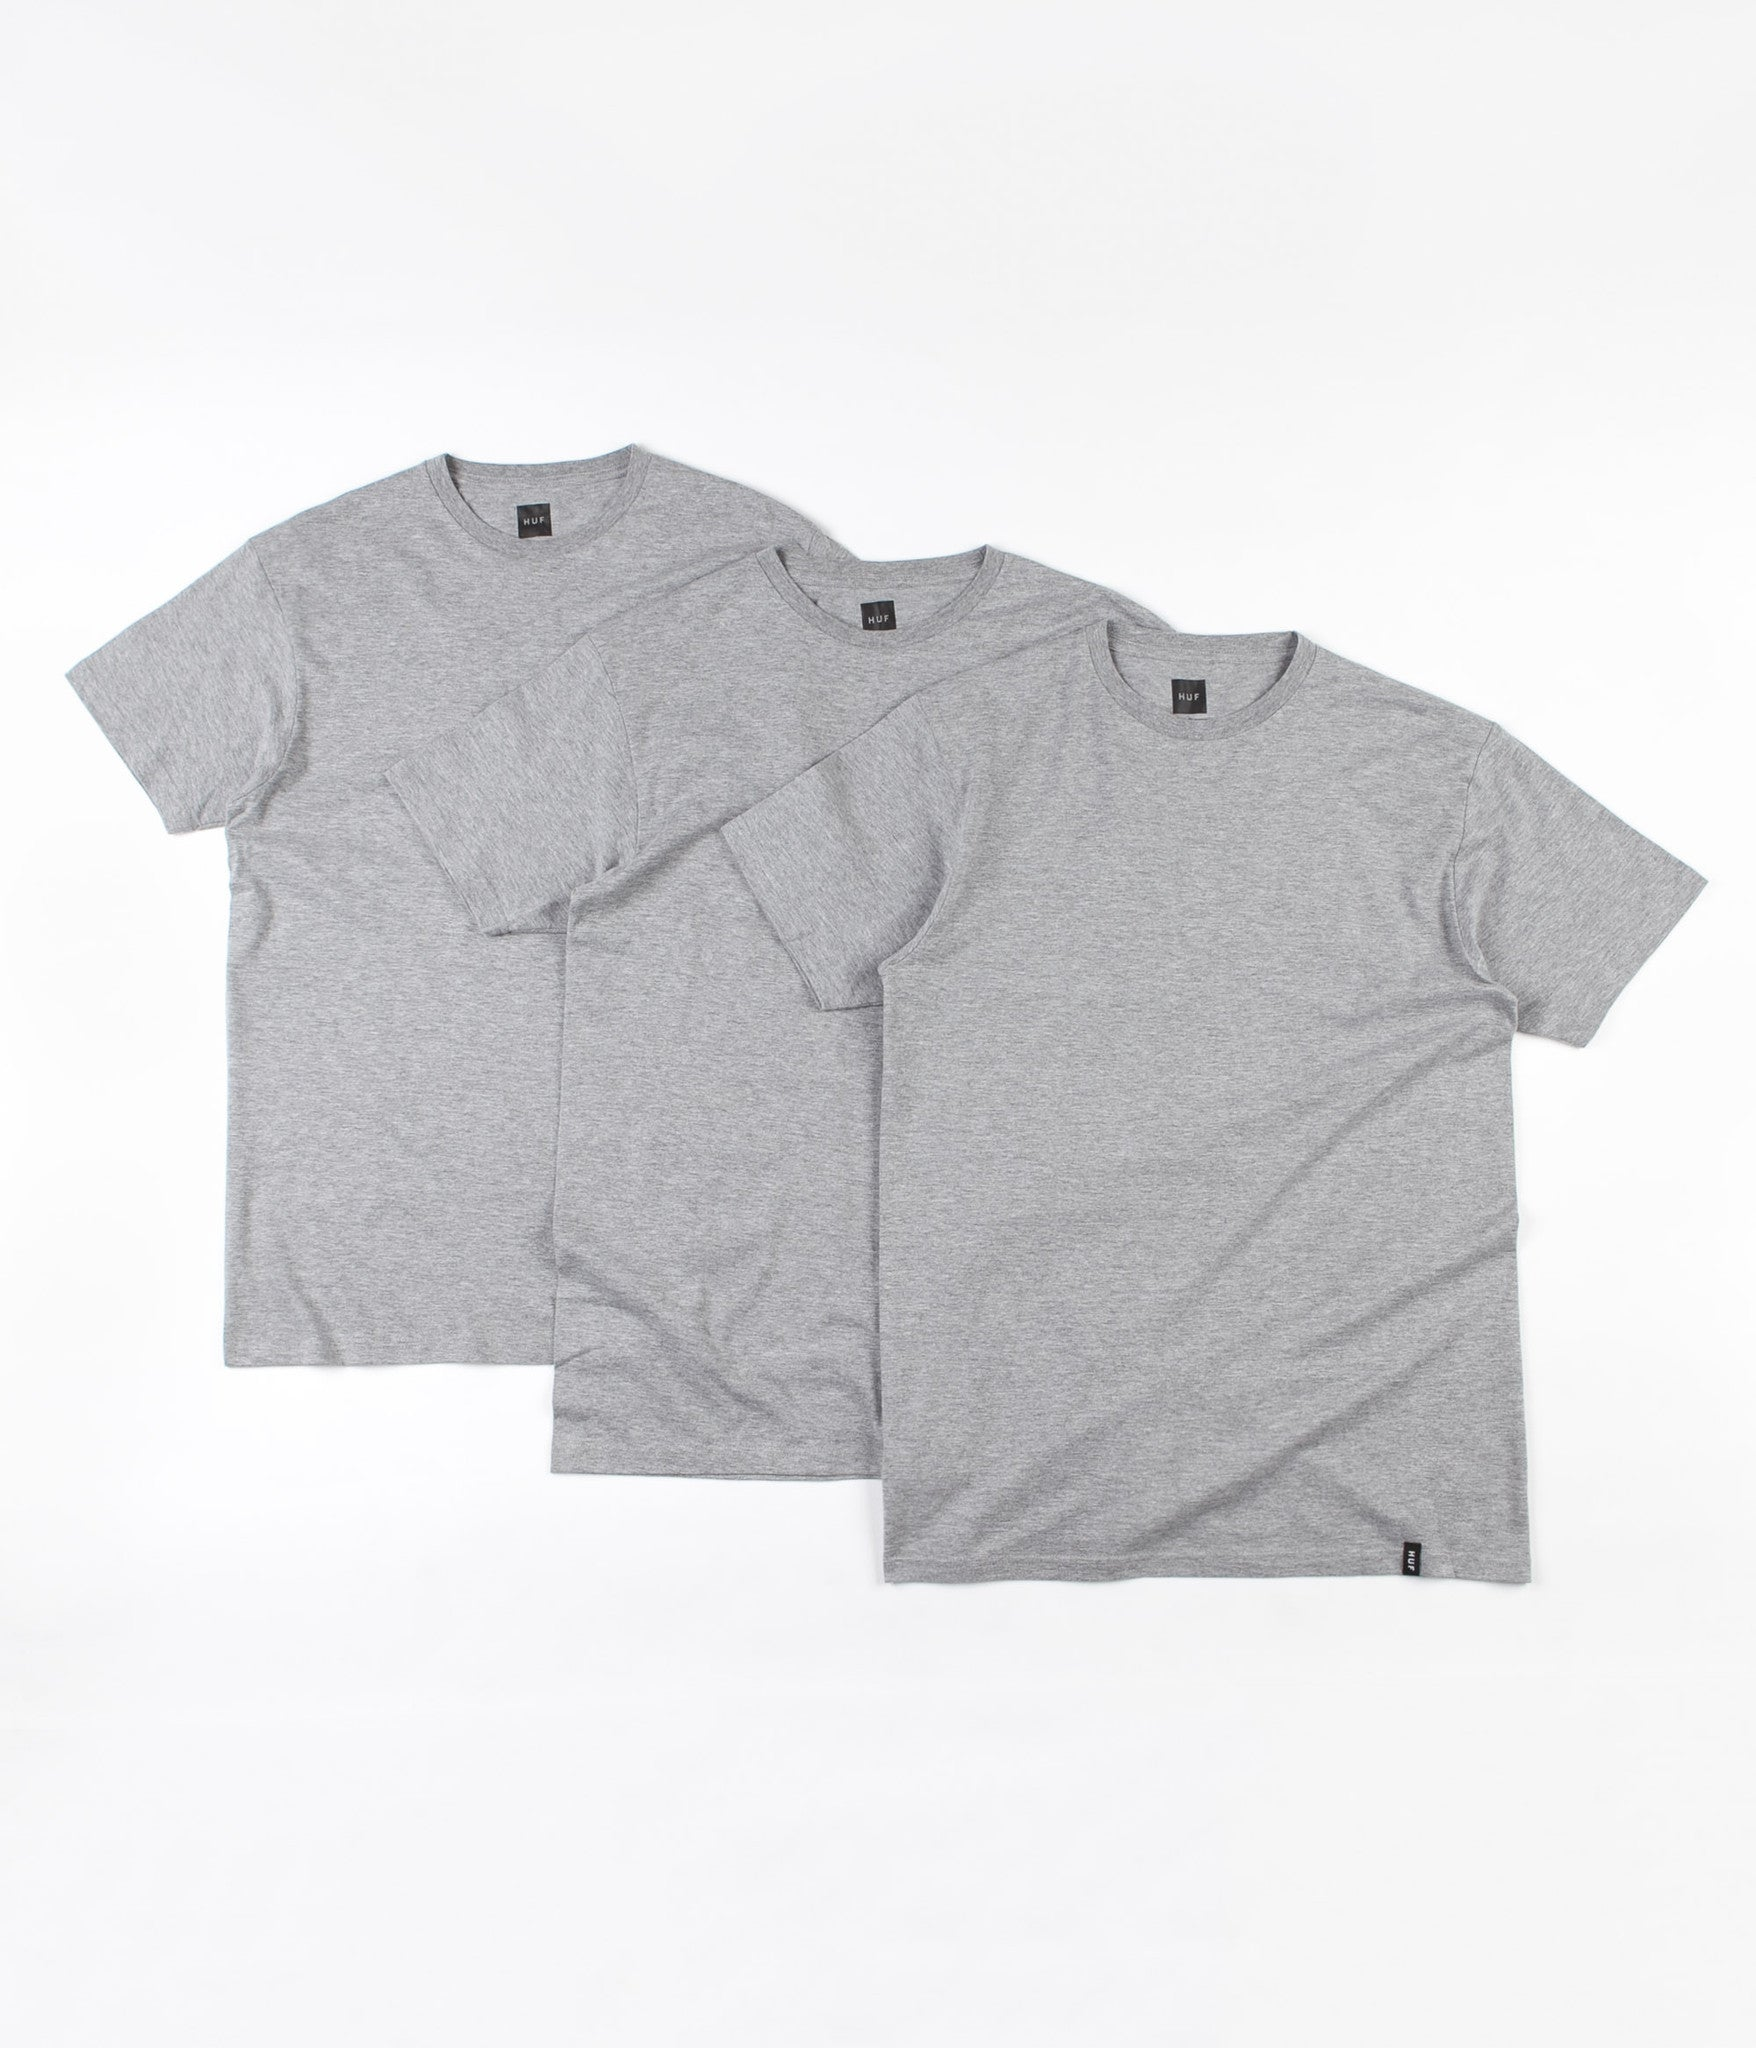 HUF T-Shirt Three Pack - Heather Grey